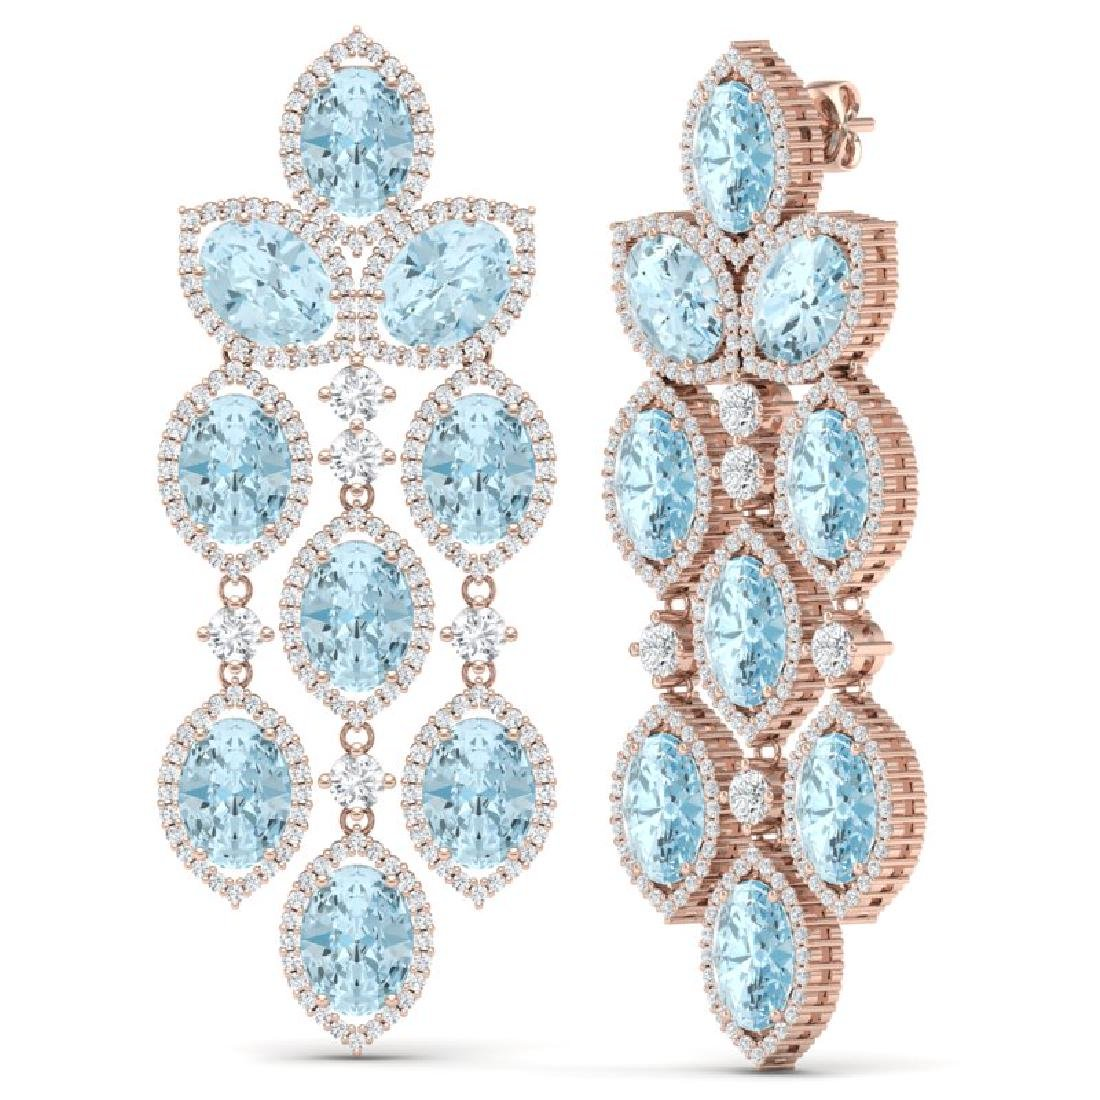 23.76 CTW Royalty Sky Topaz & VS Diamond Earrings 18K - 3